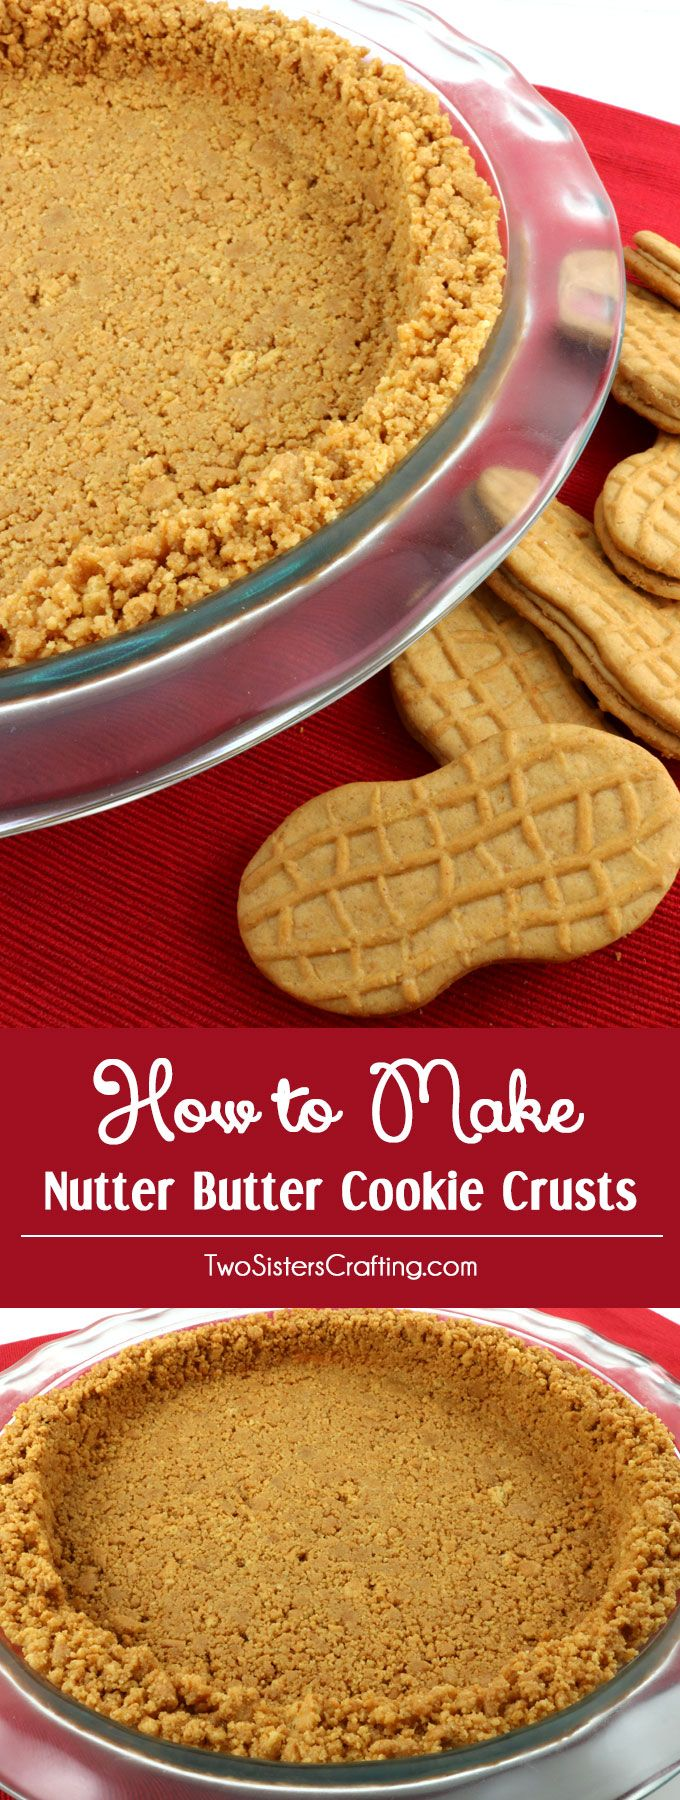 Cookie Crusts that are super easy to make, can be bake or no-bake and taste better than anything you can buy in the store. This is the Best Nutter Butter Crust recipe that you are going to find. Pin this Perfect Nutter Butter Cookie Crust recipe for later and follow us for more pie crust recipe ideas.